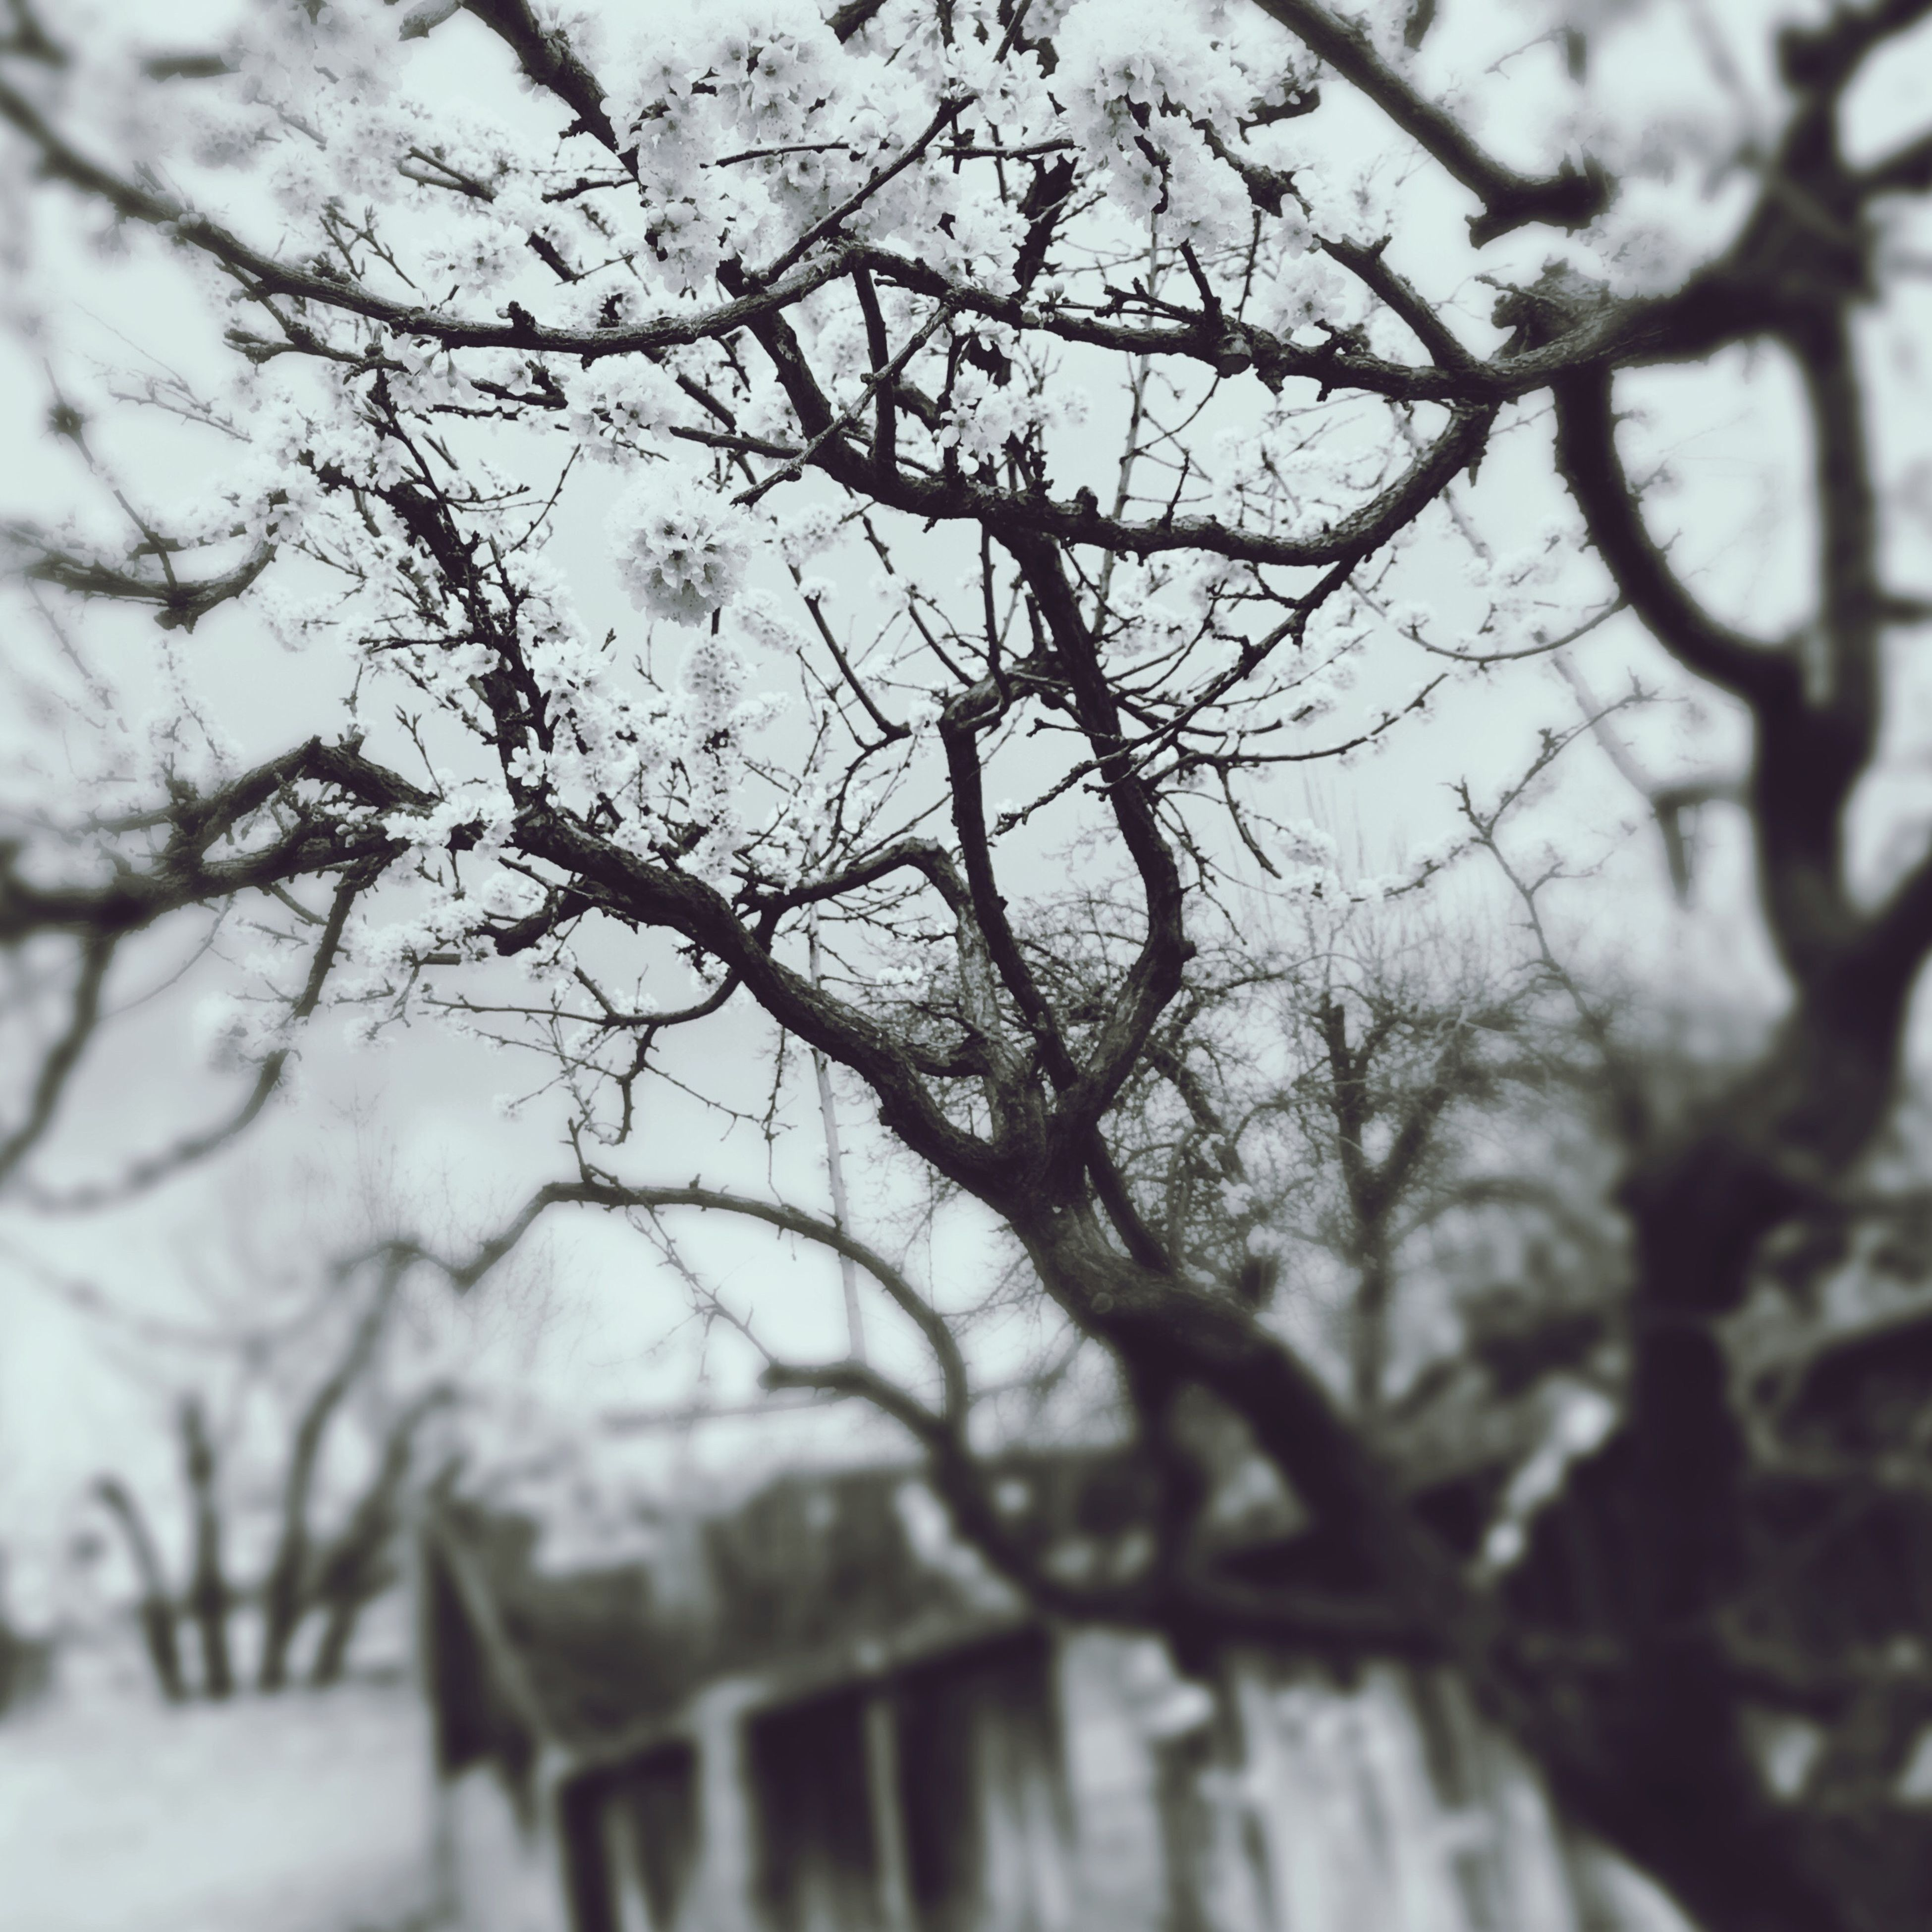 branch, tree, focus on foreground, bare tree, selective focus, nature, season, close-up, winter, growth, tranquility, day, twig, outdoors, low angle view, beauty in nature, cold temperature, no people, snow, sky